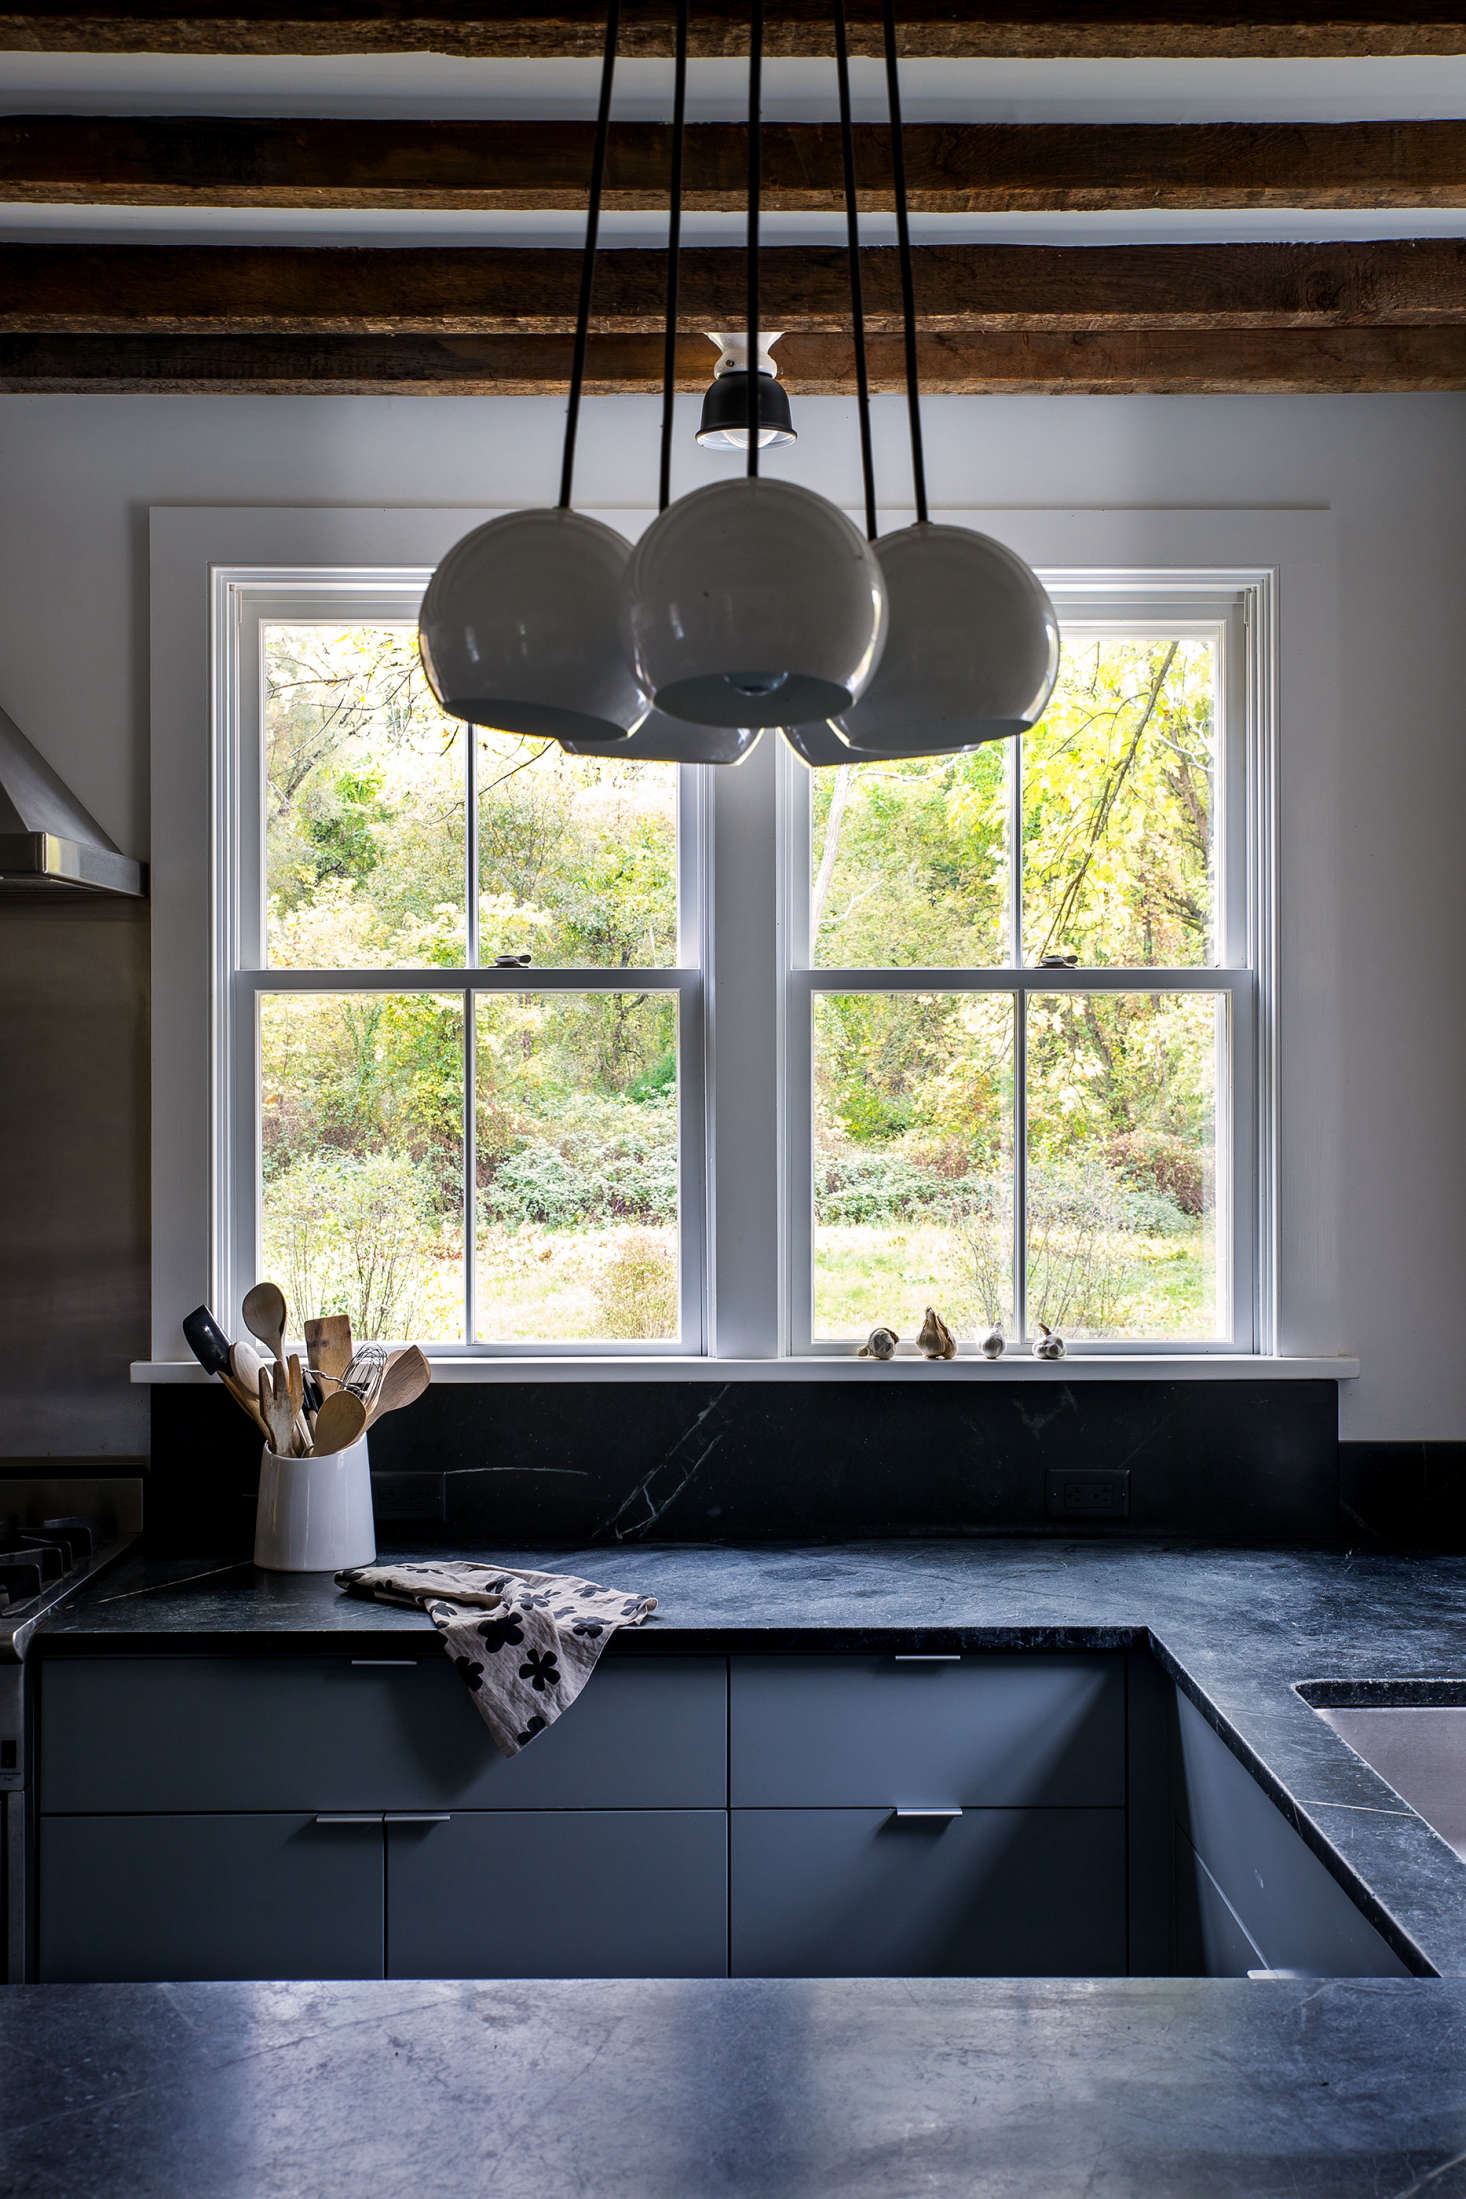 Dunja also removed a central island in favor of a U-shaped counter layout. (Thetea towel on the countertop was designed by Dunja. Visit her her online shop, Doonyaya, for similar.) A cluster chandelier from Schoolhouse Electric illuminates the breakfast bar.